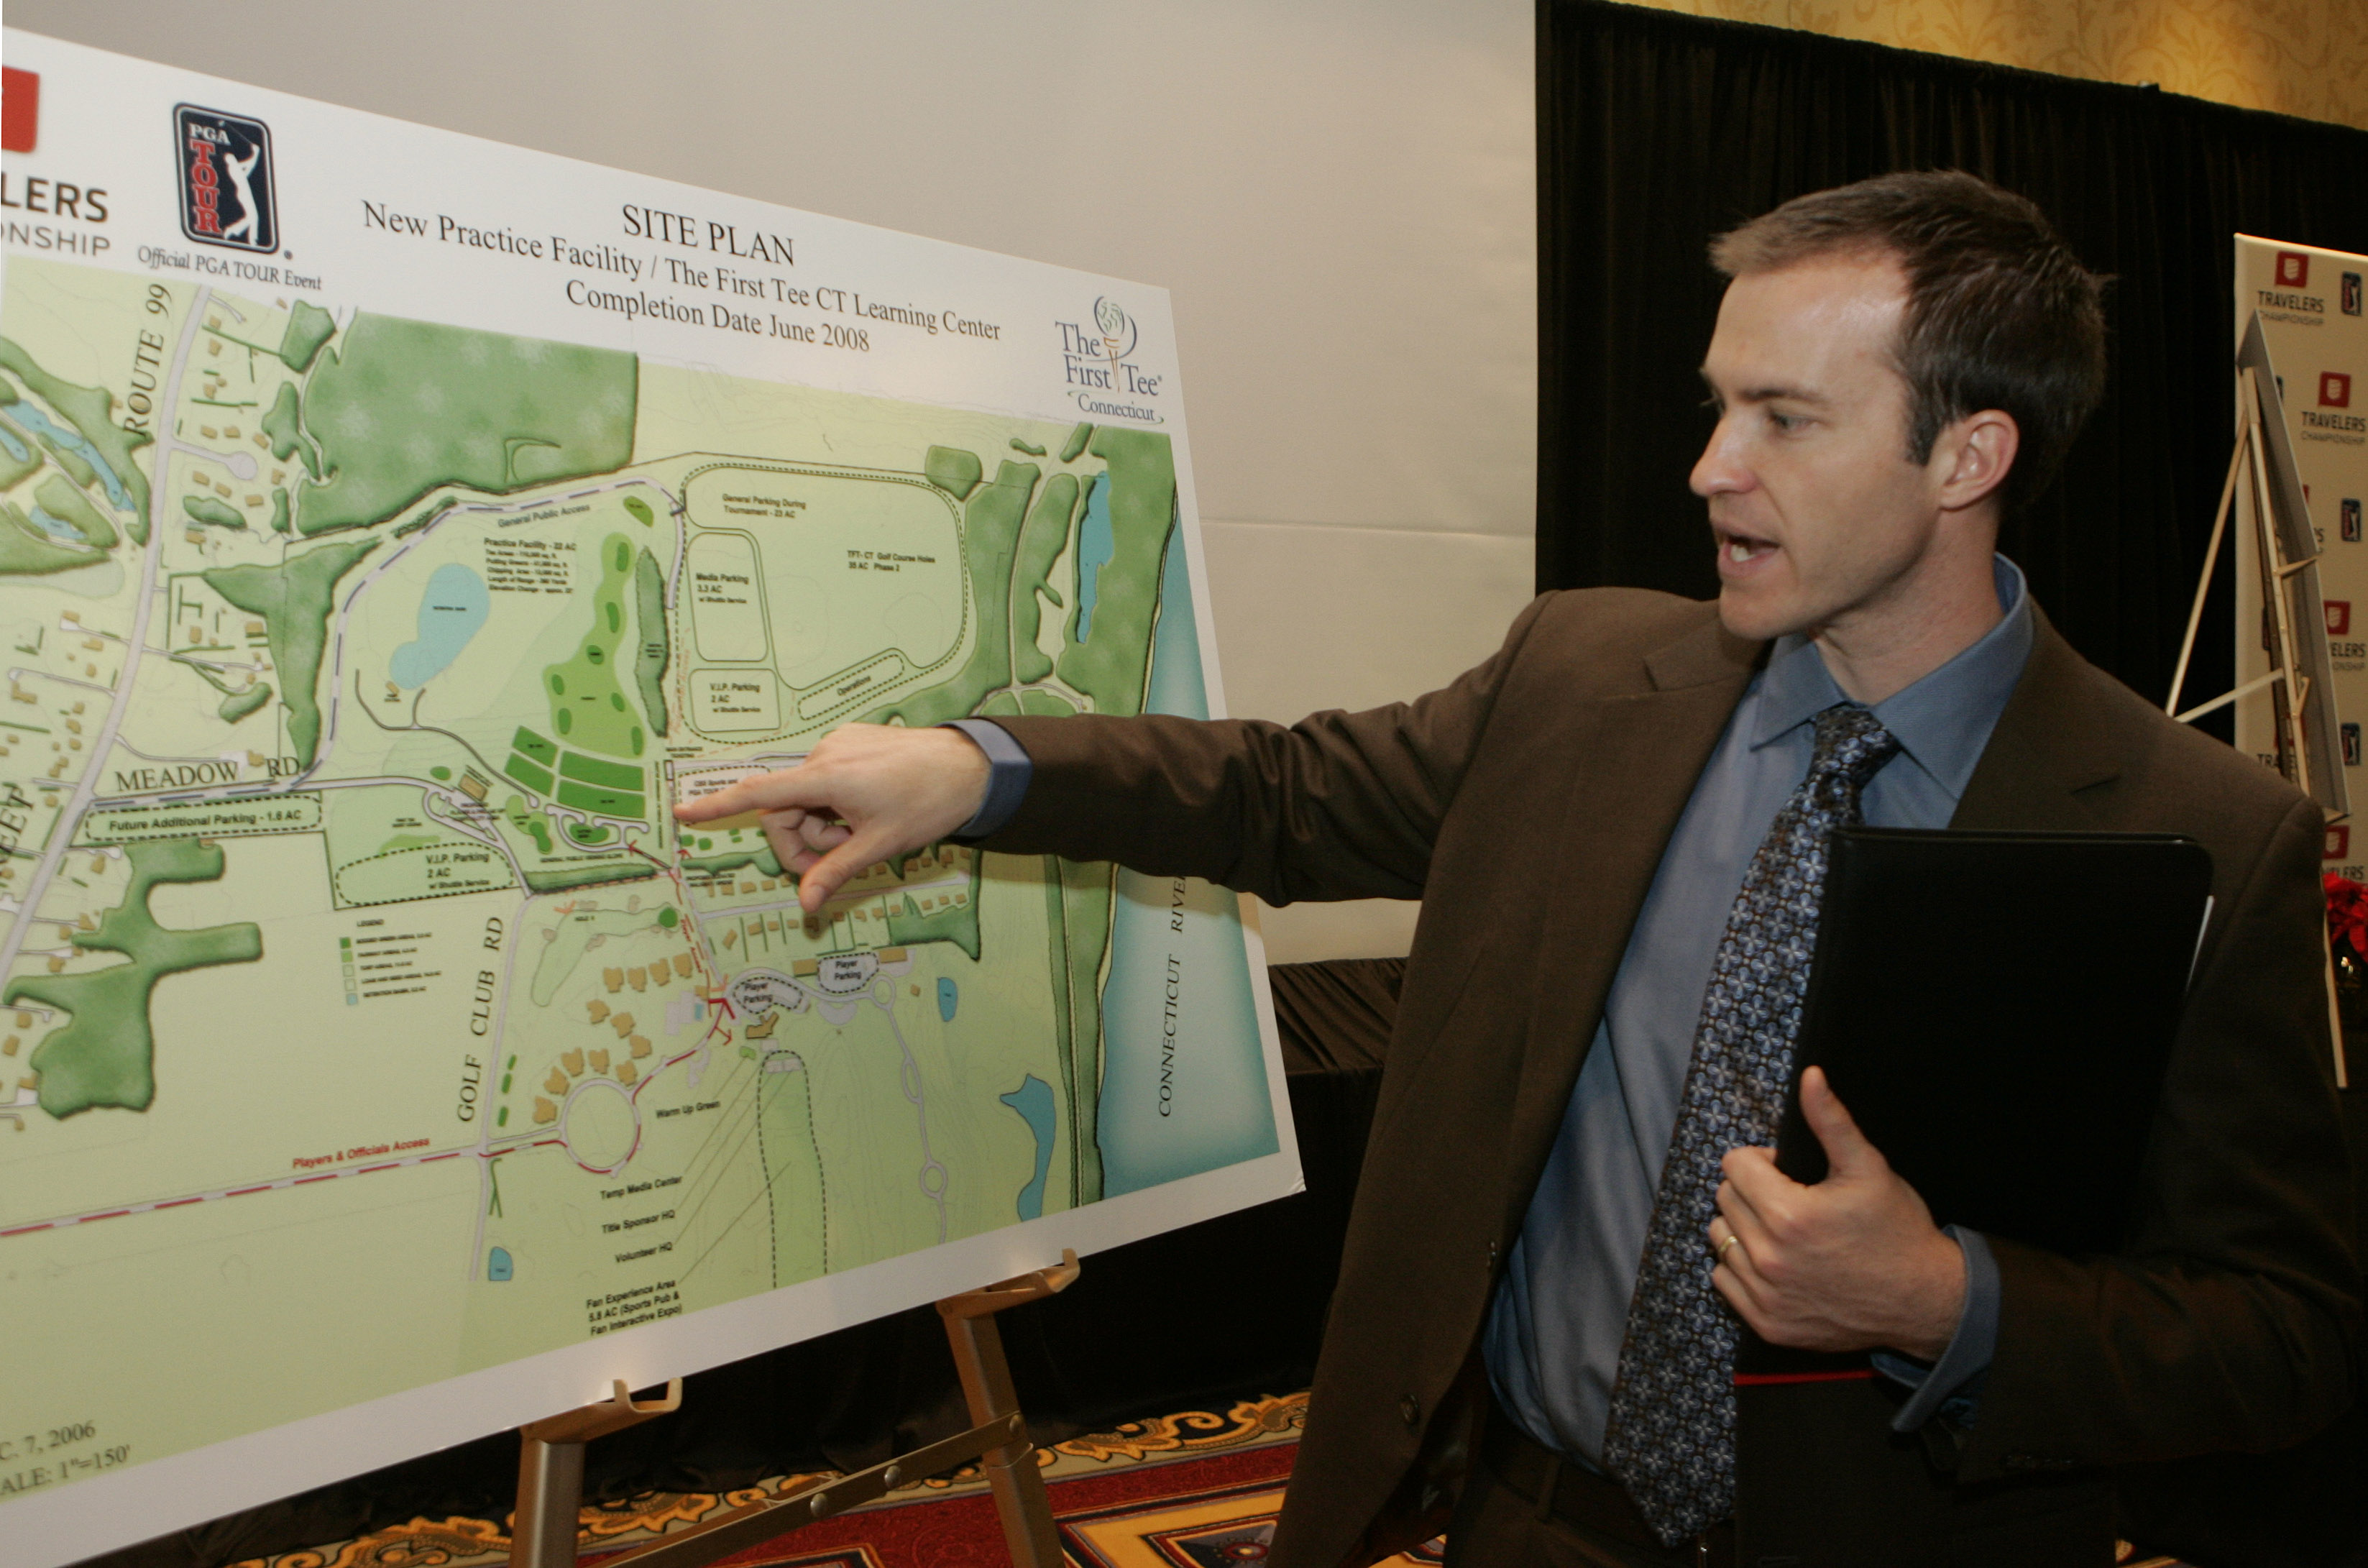 Nathan Grube, Travelers Championship golf tournament director, points out changes made in 2008 to the TPC at River Highlands facility.